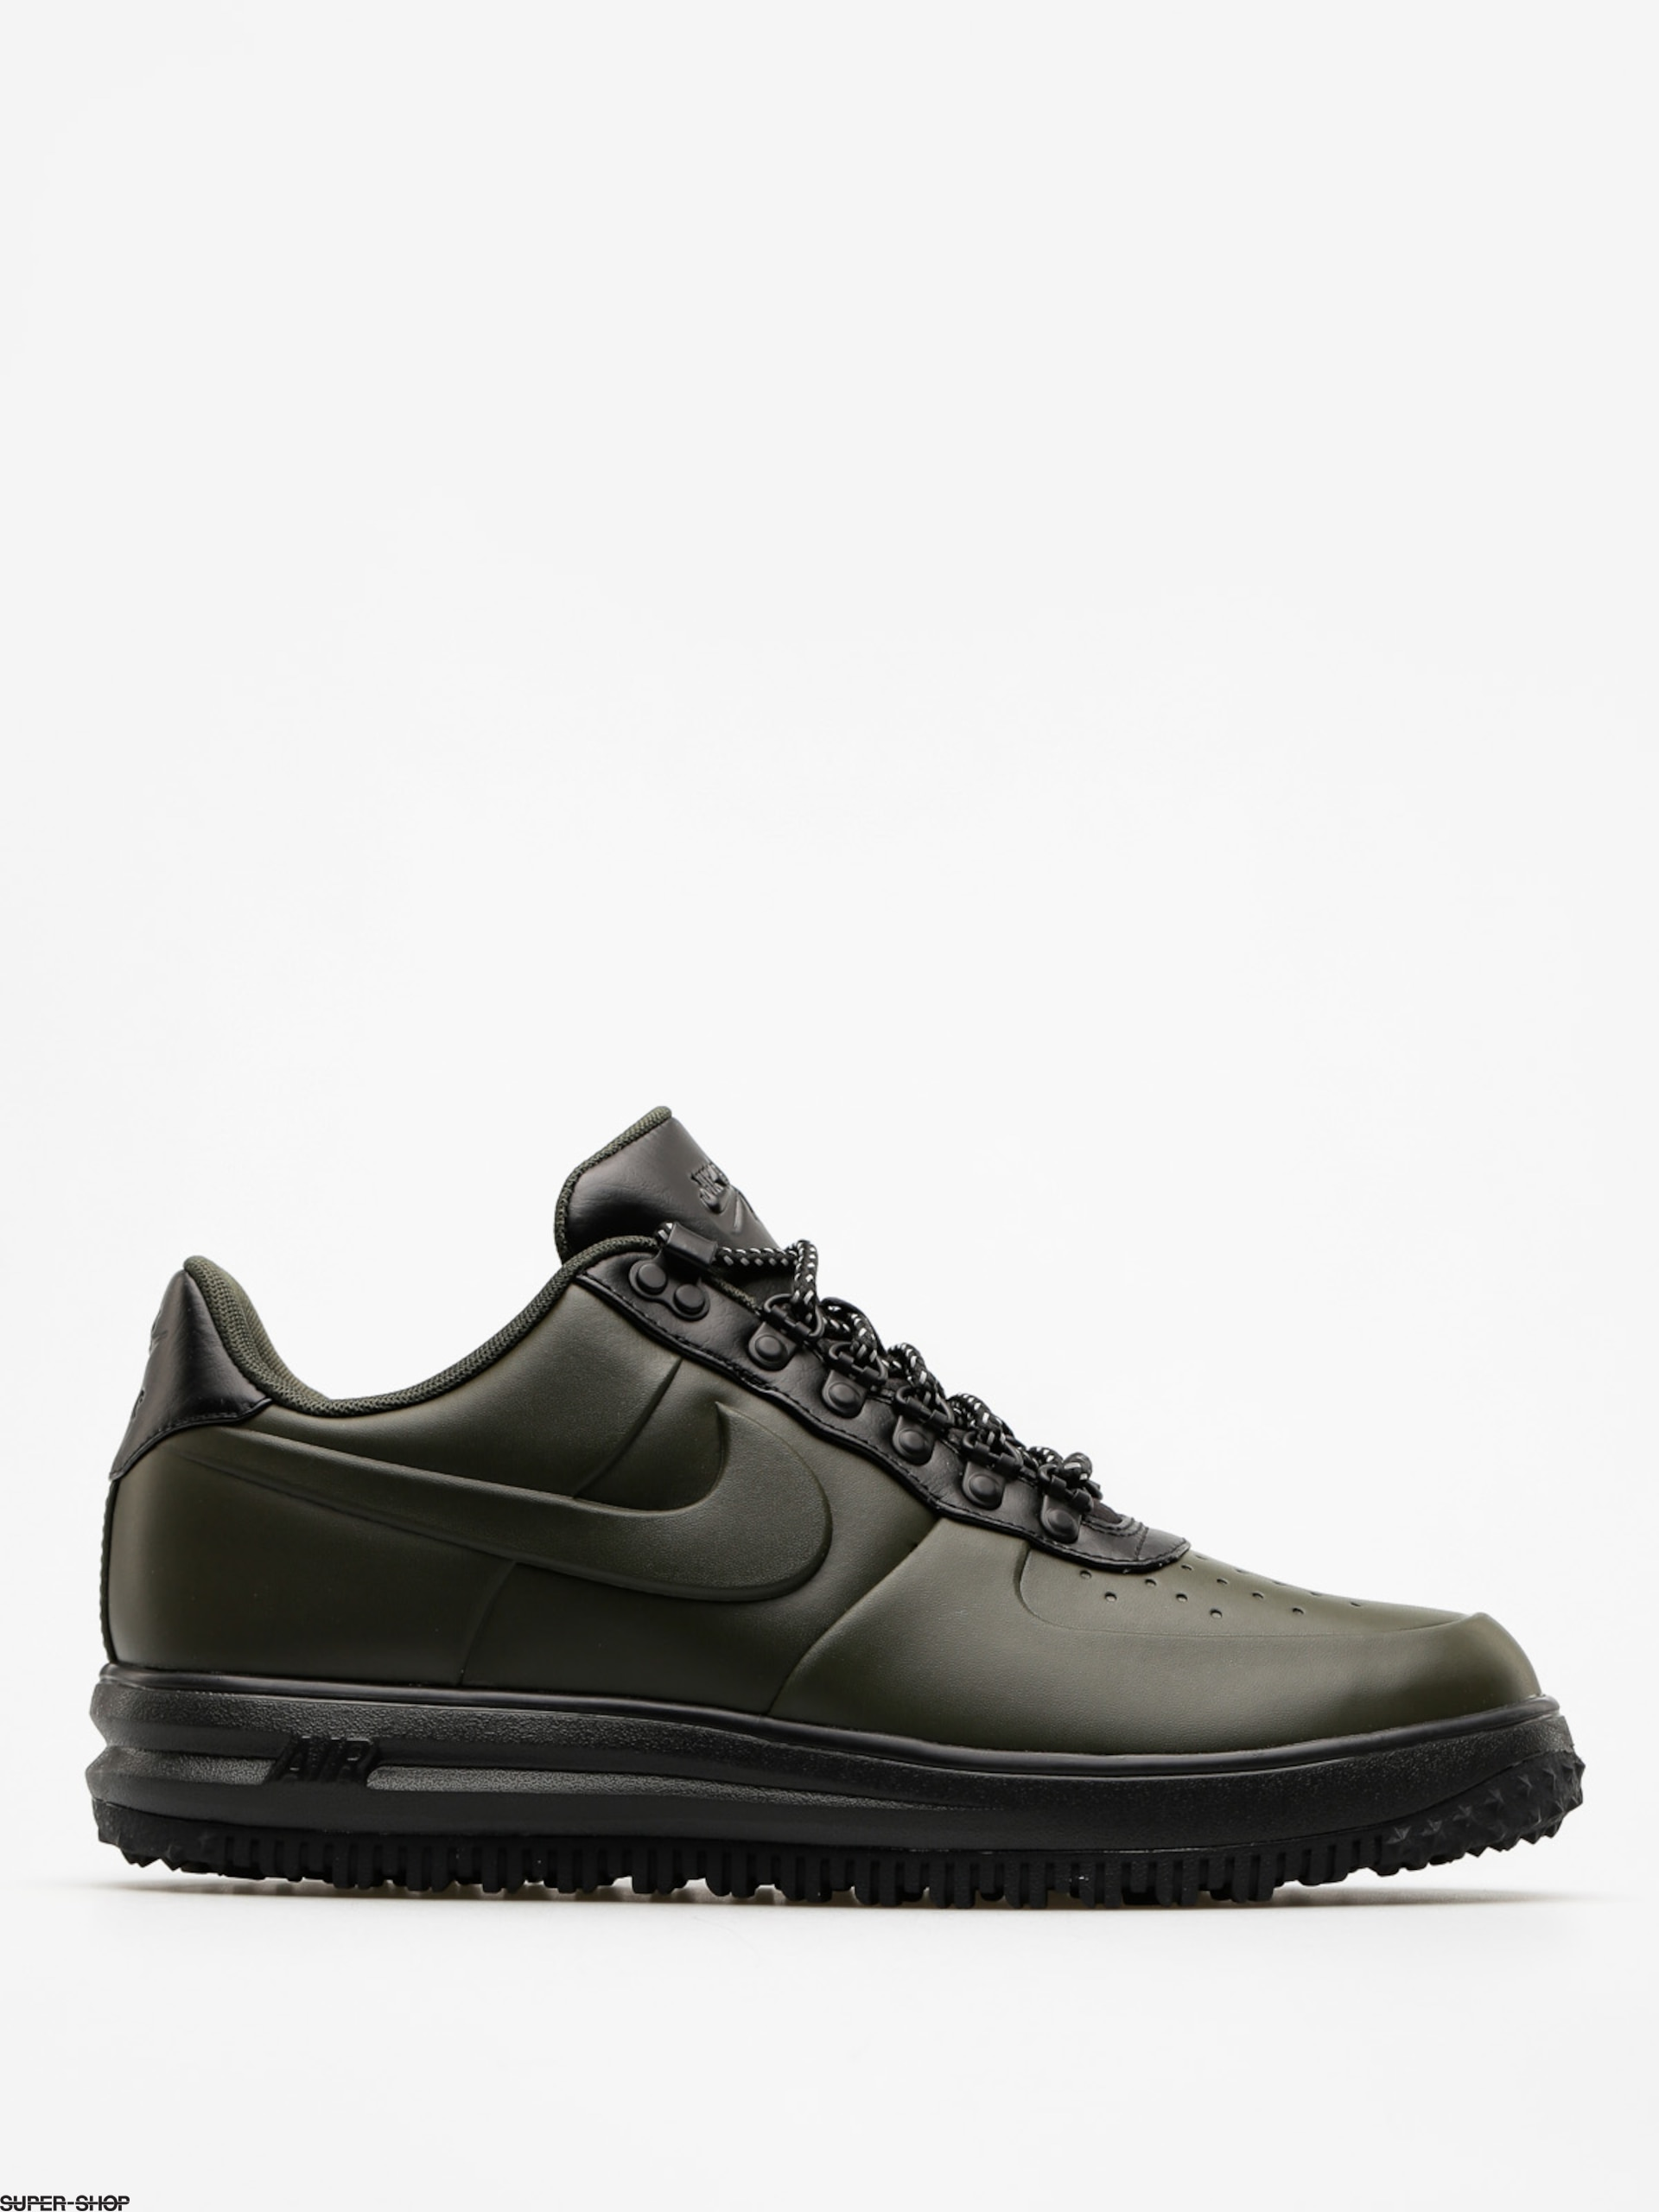 Nike Shoes Lunar Force 1 Low Duckboot